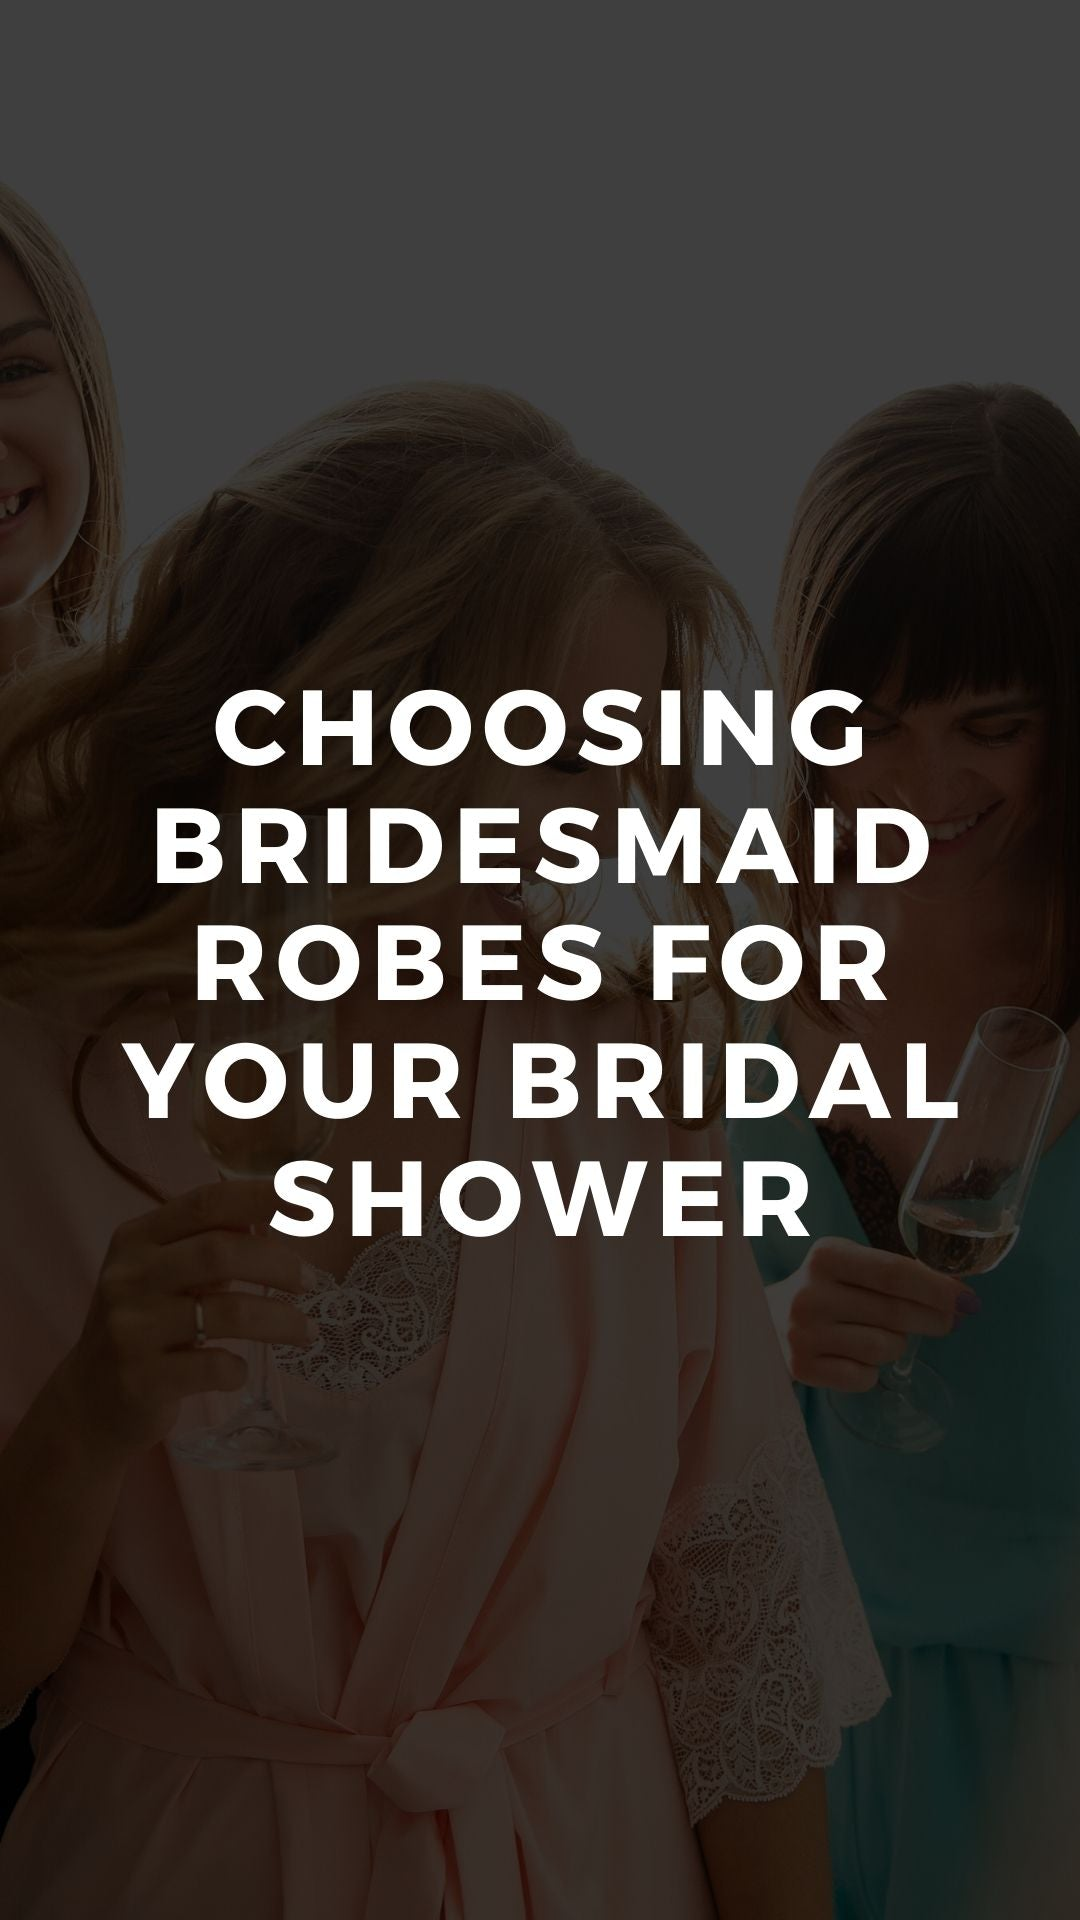 Choosing Bridesmaid Robes for Your Bridal Shower